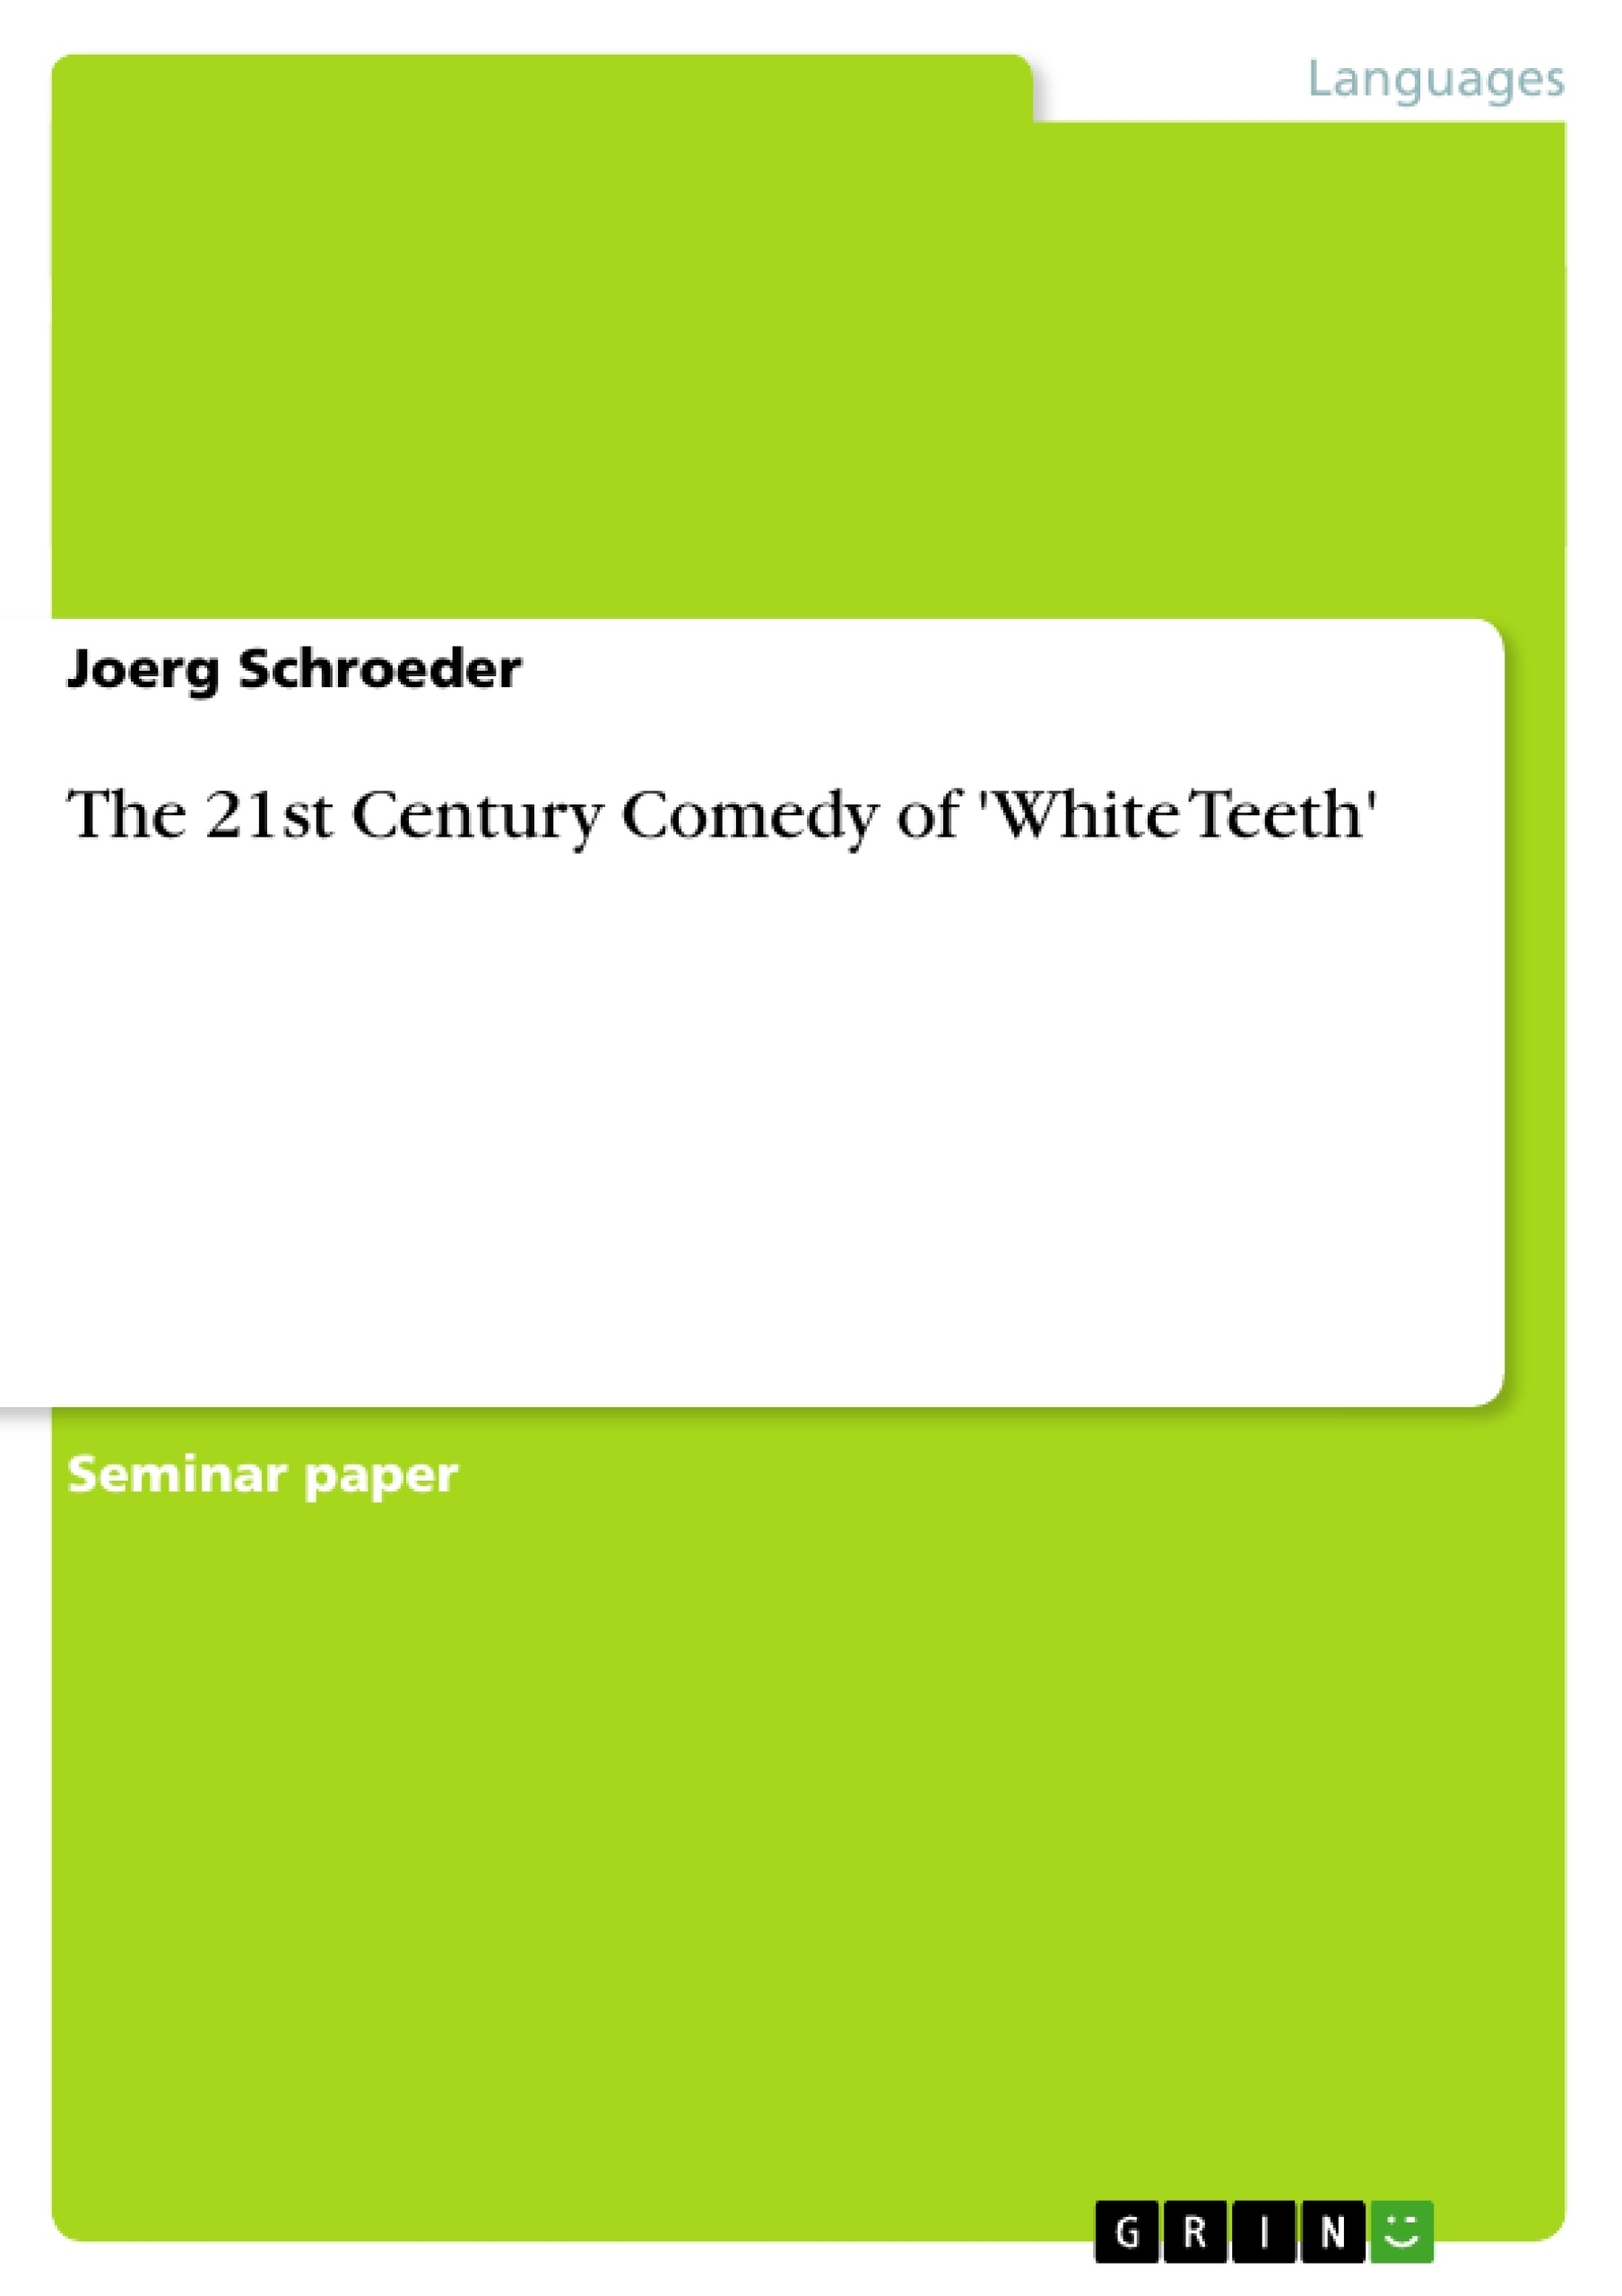 Title: The 21st Century Comedy of 'White Teeth'